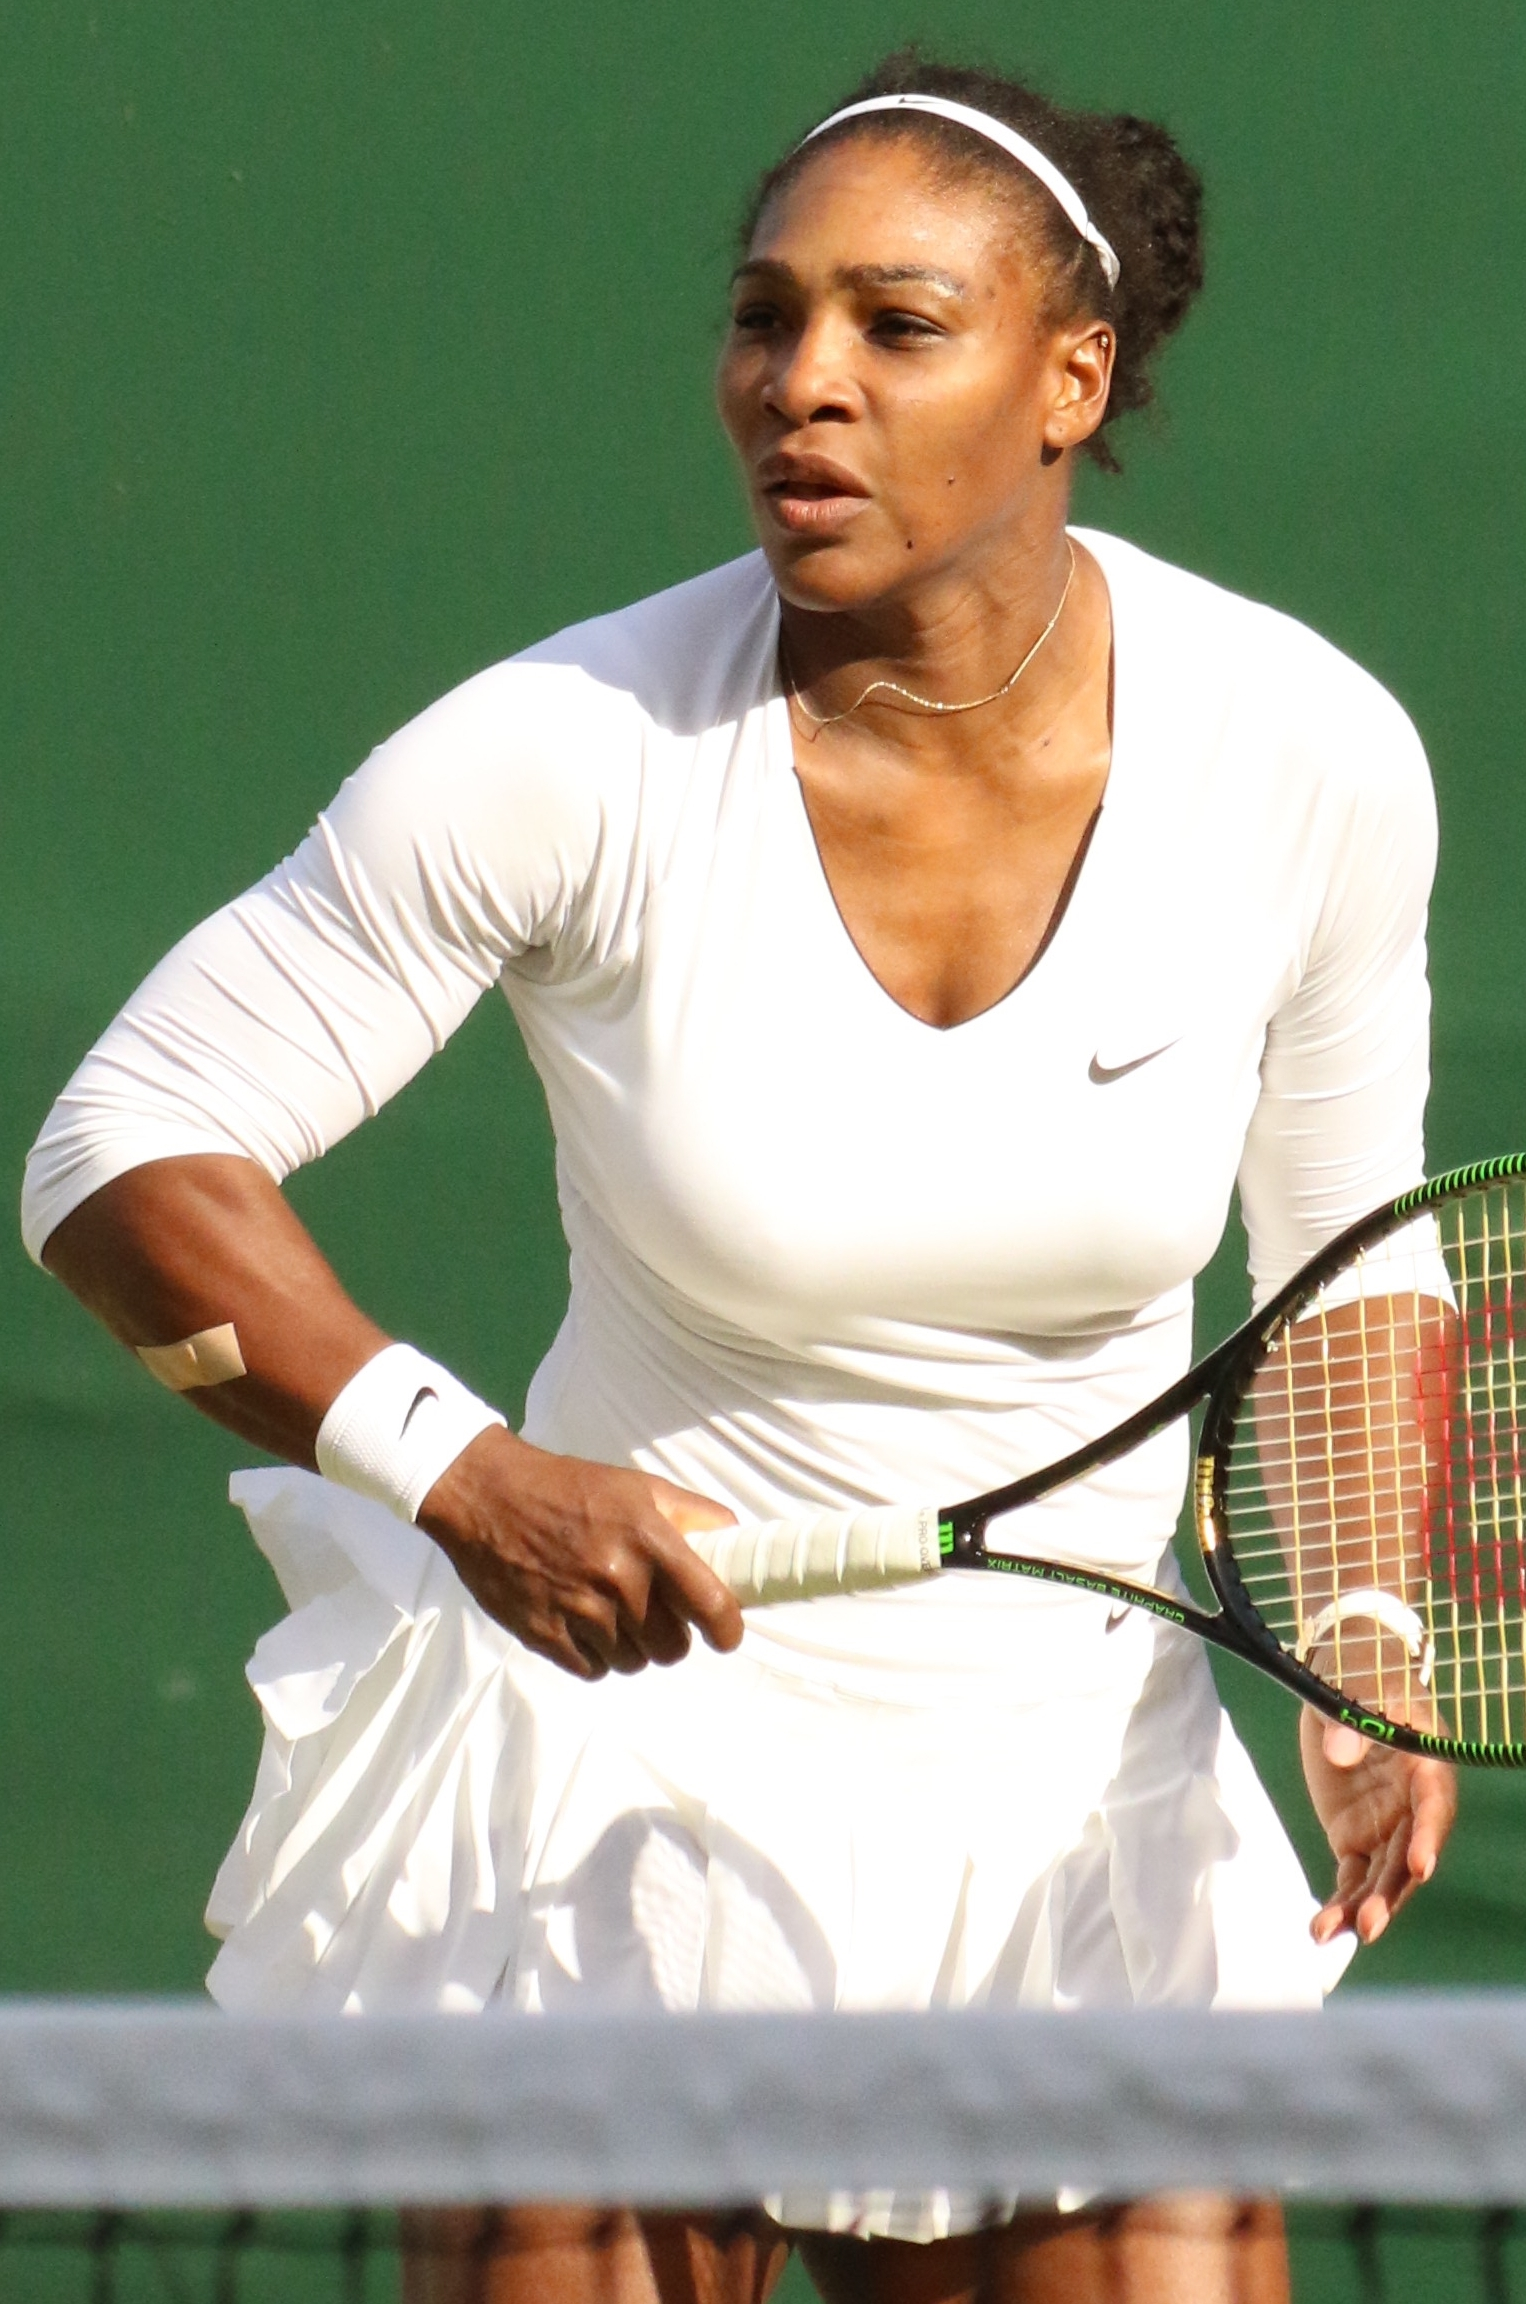 Speaking, tennis player needs breast reduction